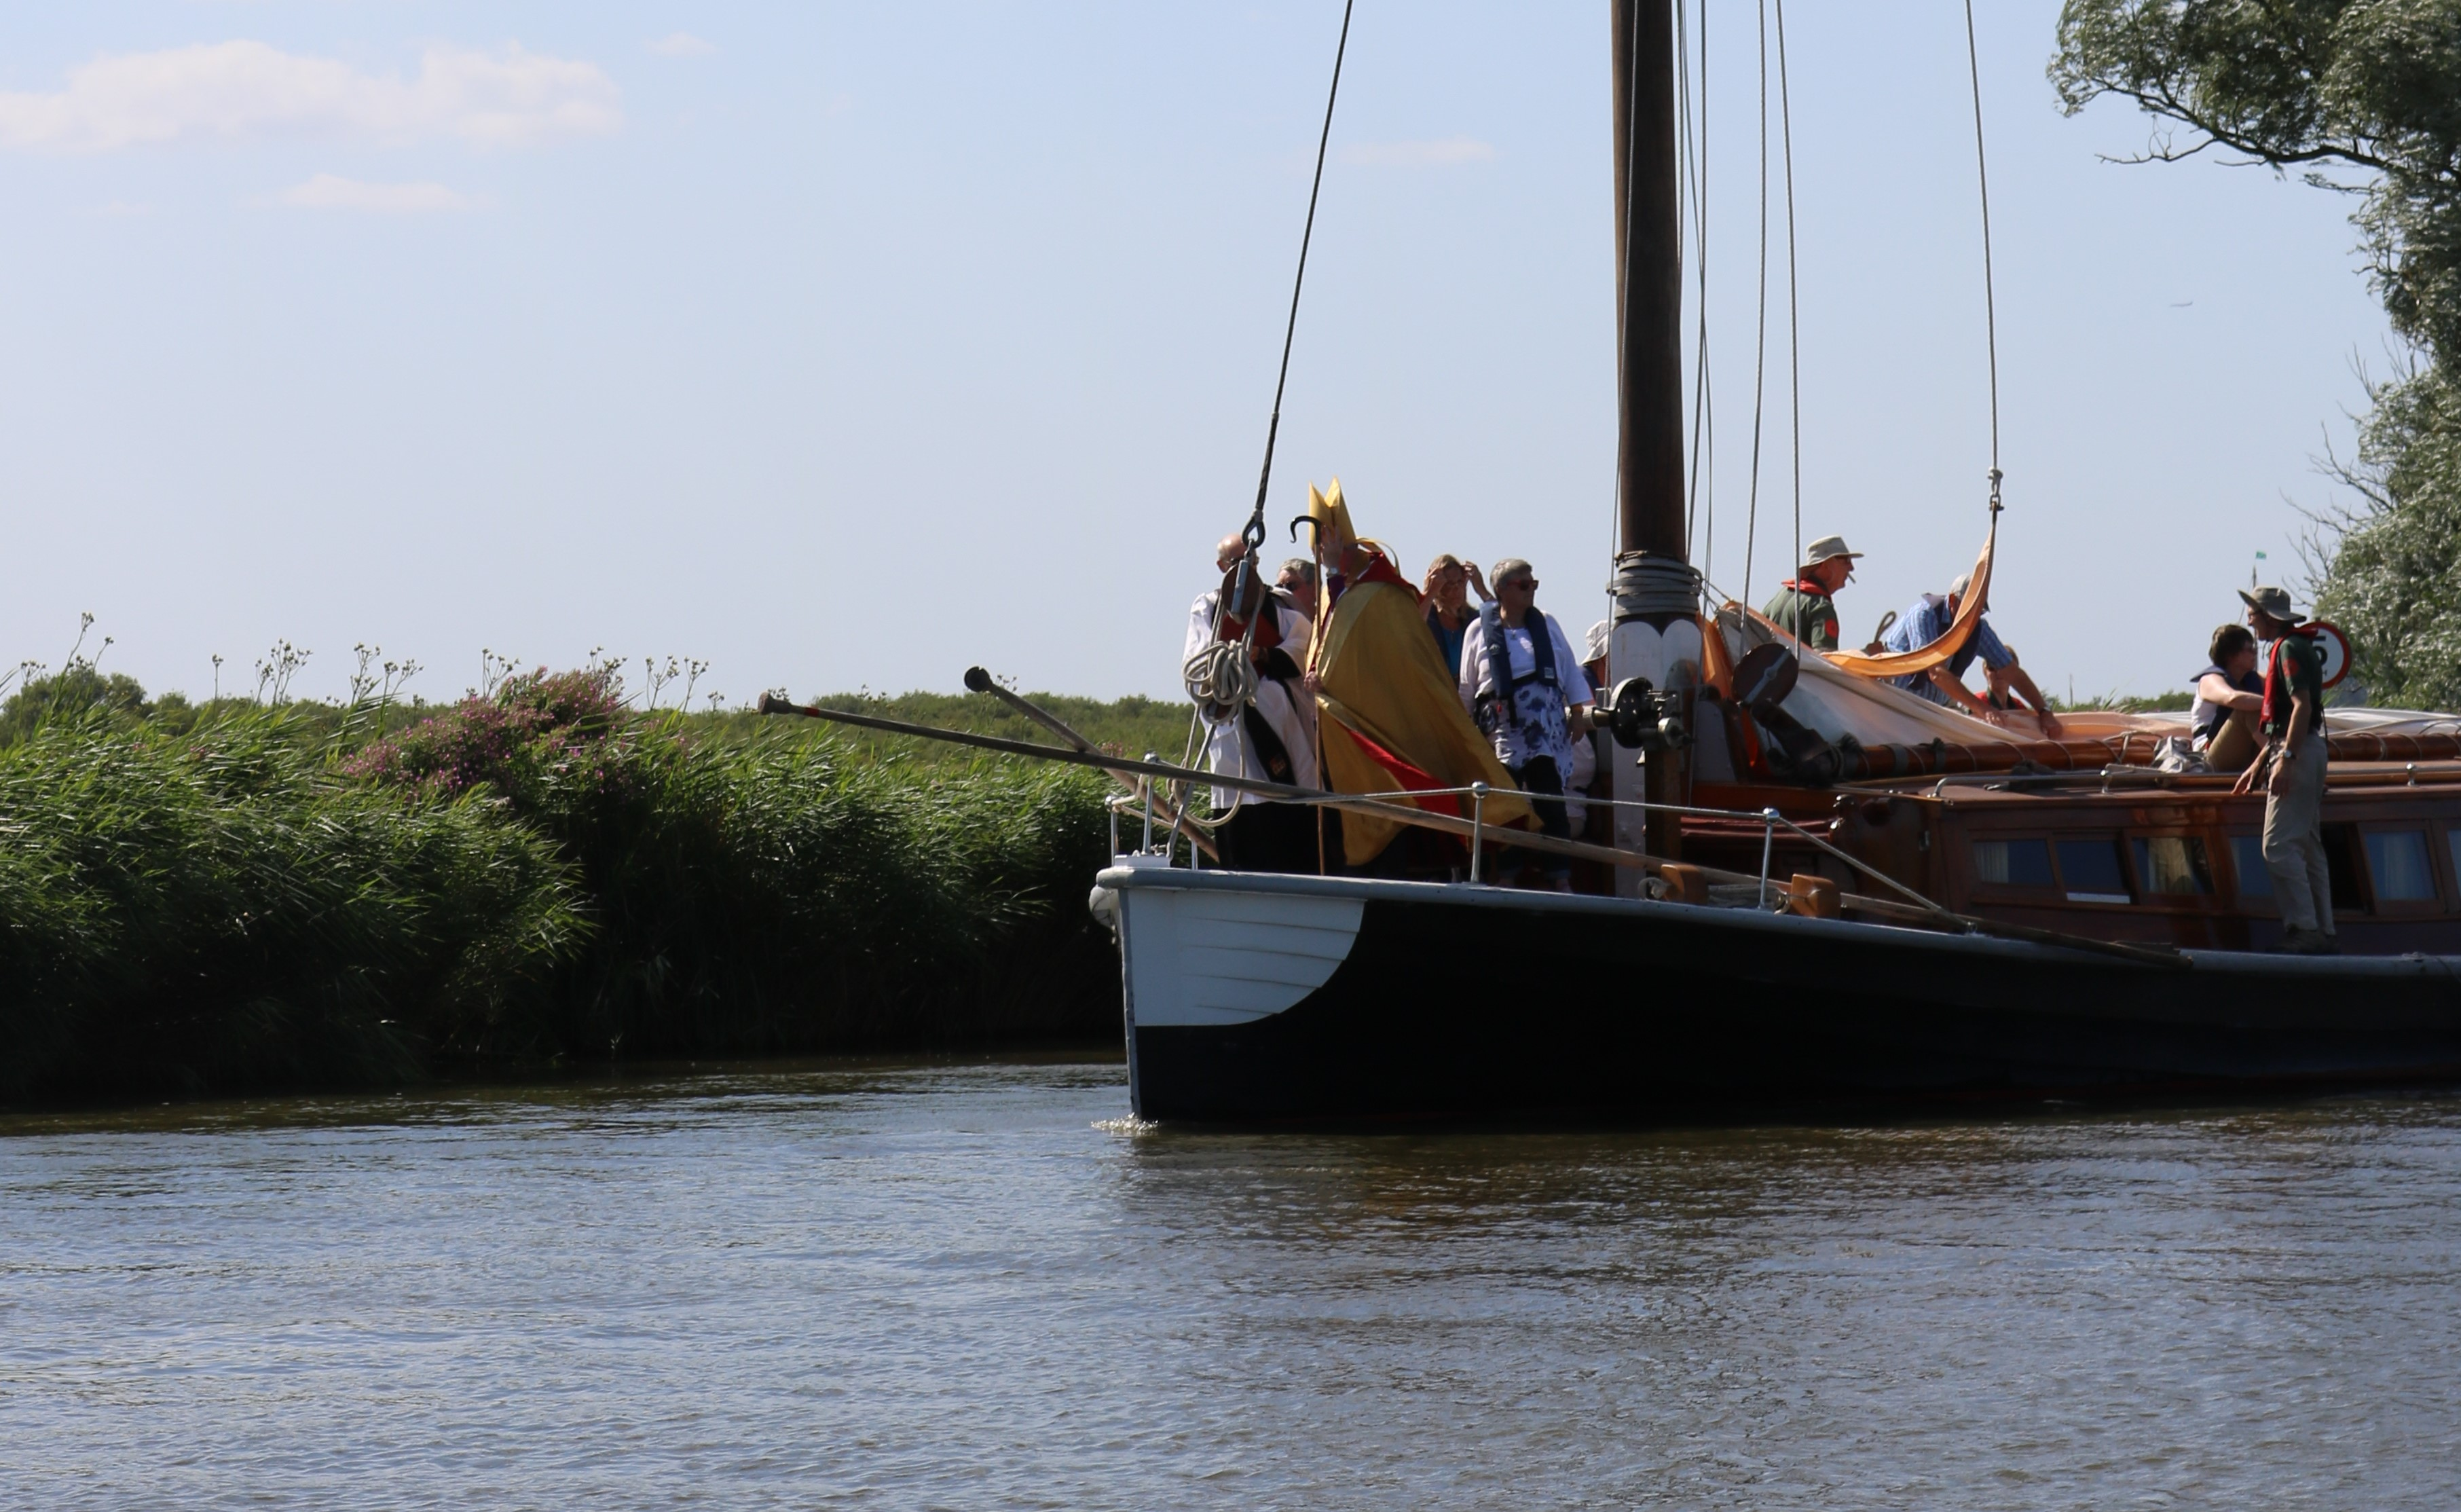 The Bishop of Norwich on the wherry